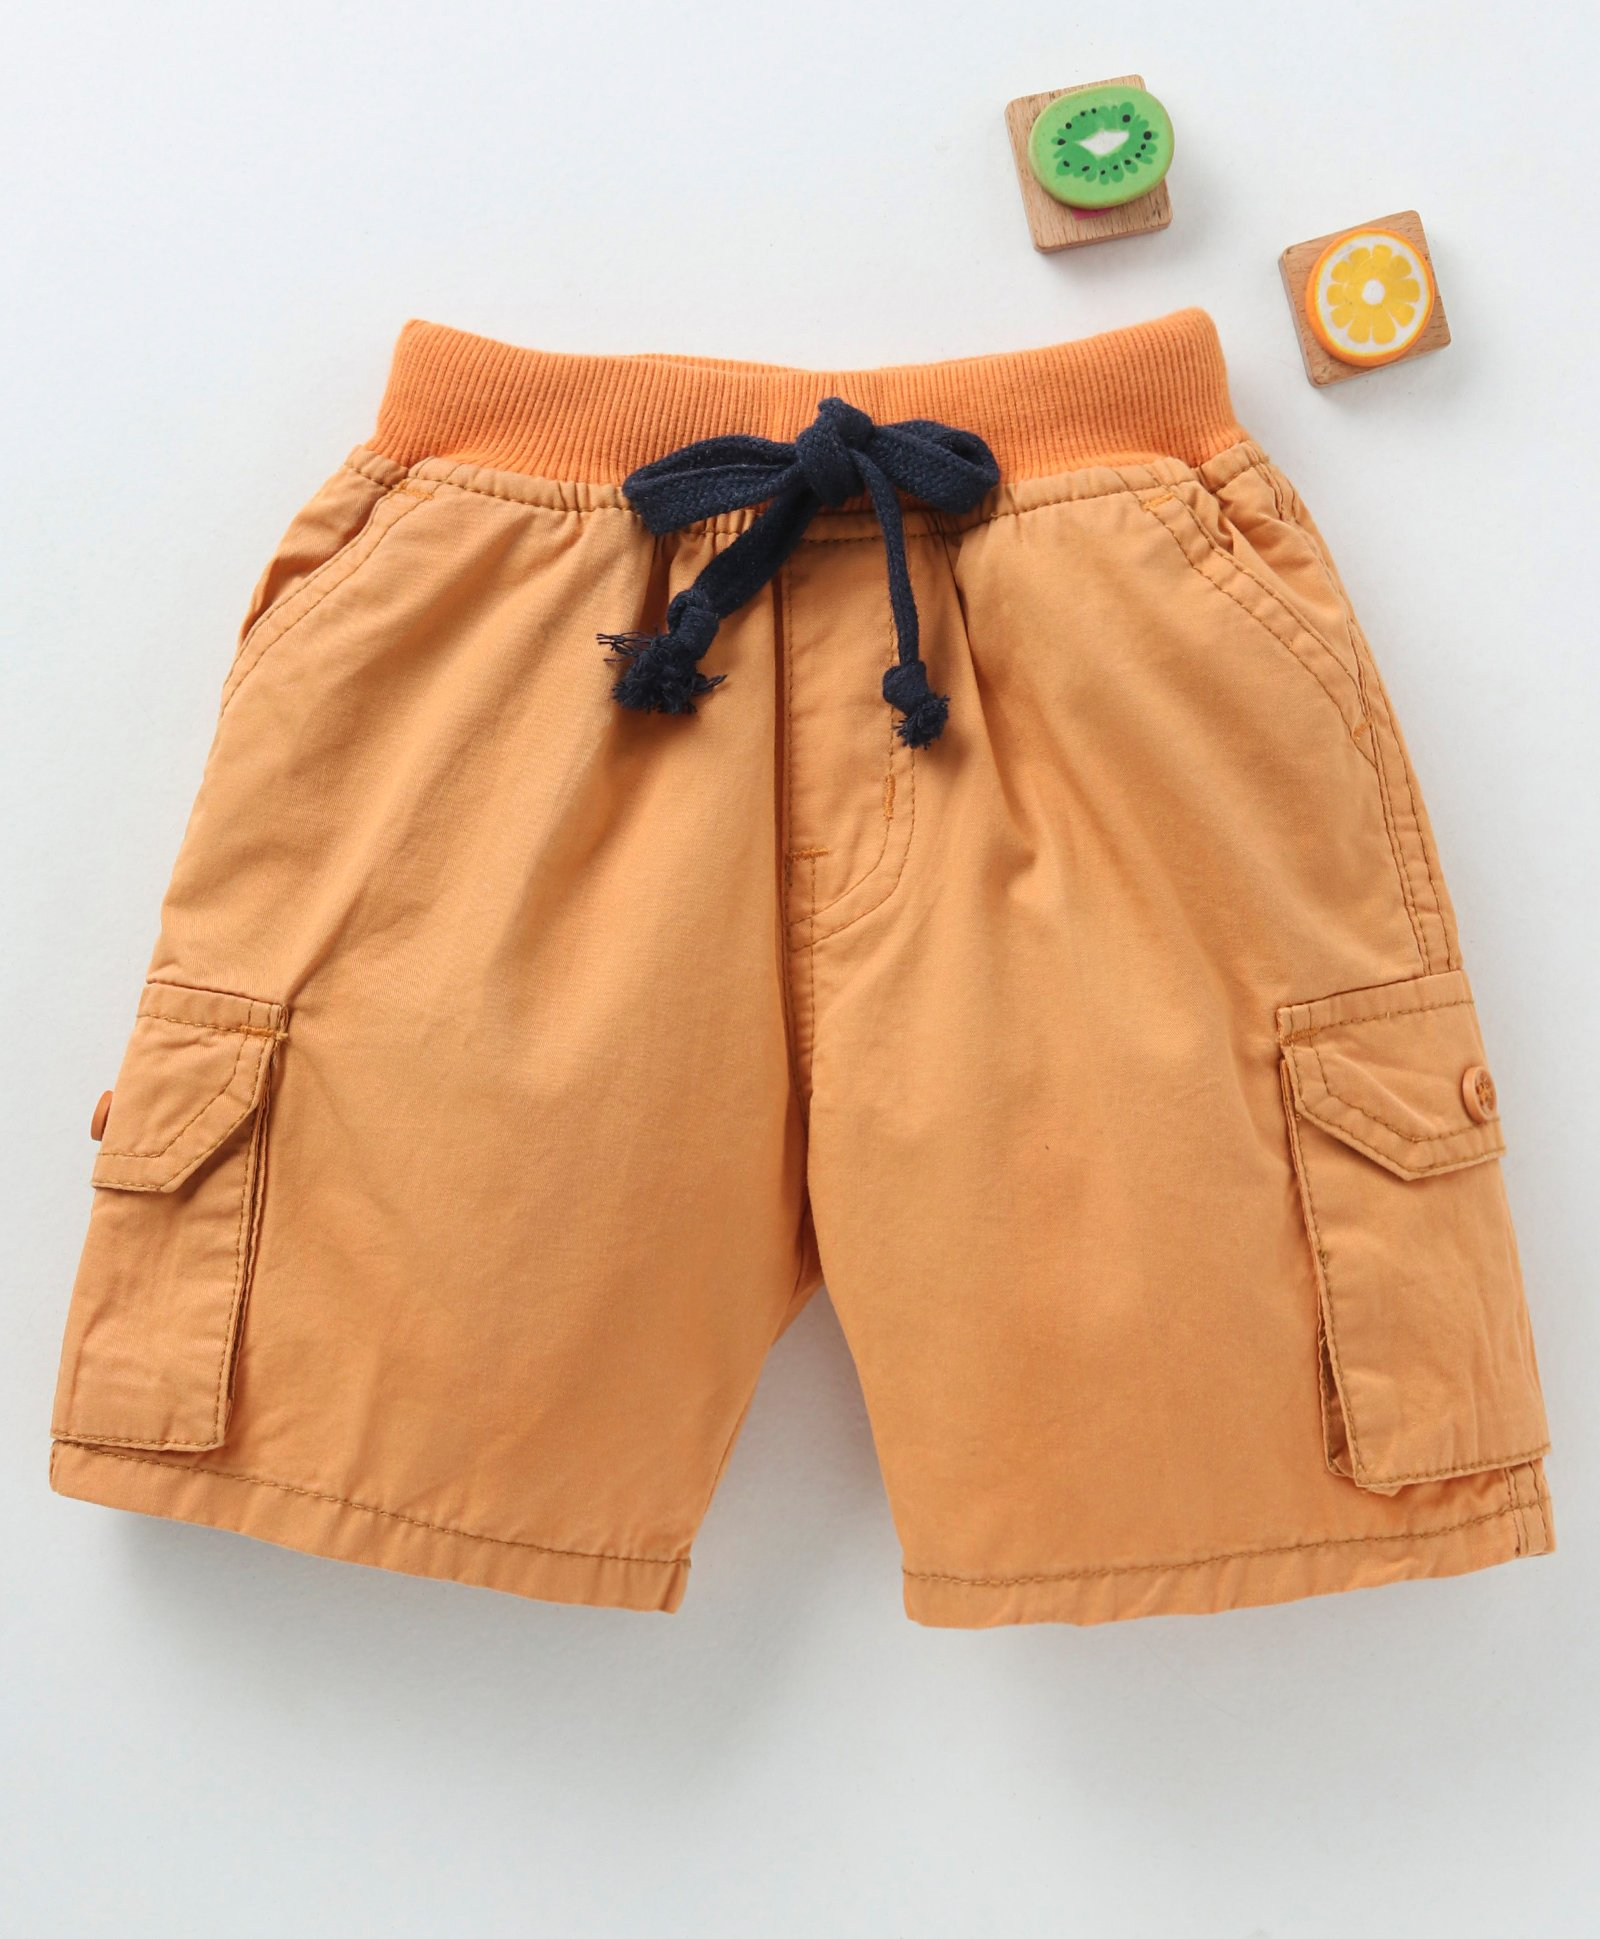 a66bd6d58 Buy Olio Kids Solid Shorts Rust Brown for Boys (9-12 Months) Online ...